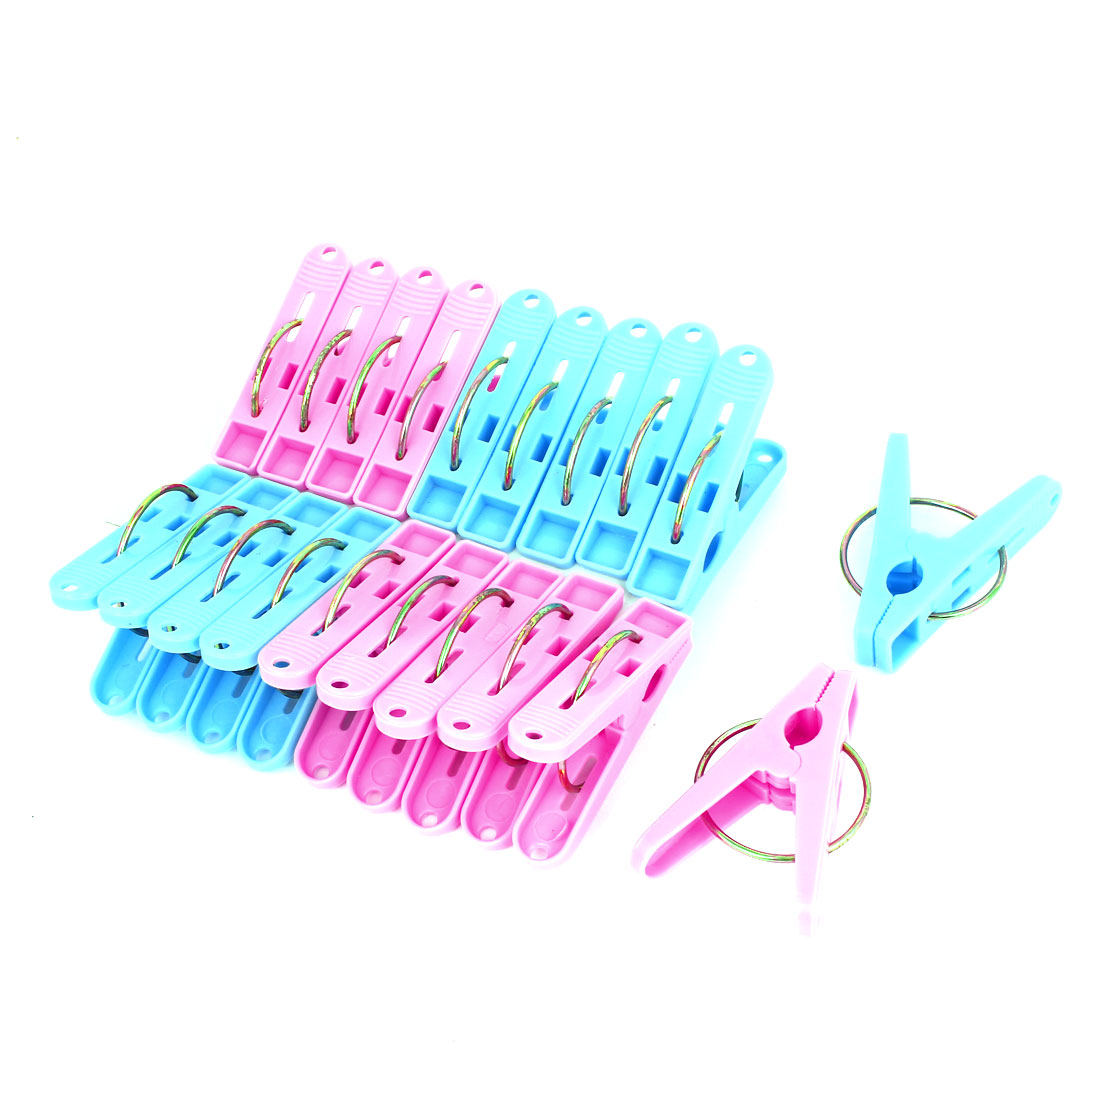 Home Pink Blue Clothes Hanger Clothing Pegs Clips Clothespins 20 Pcs